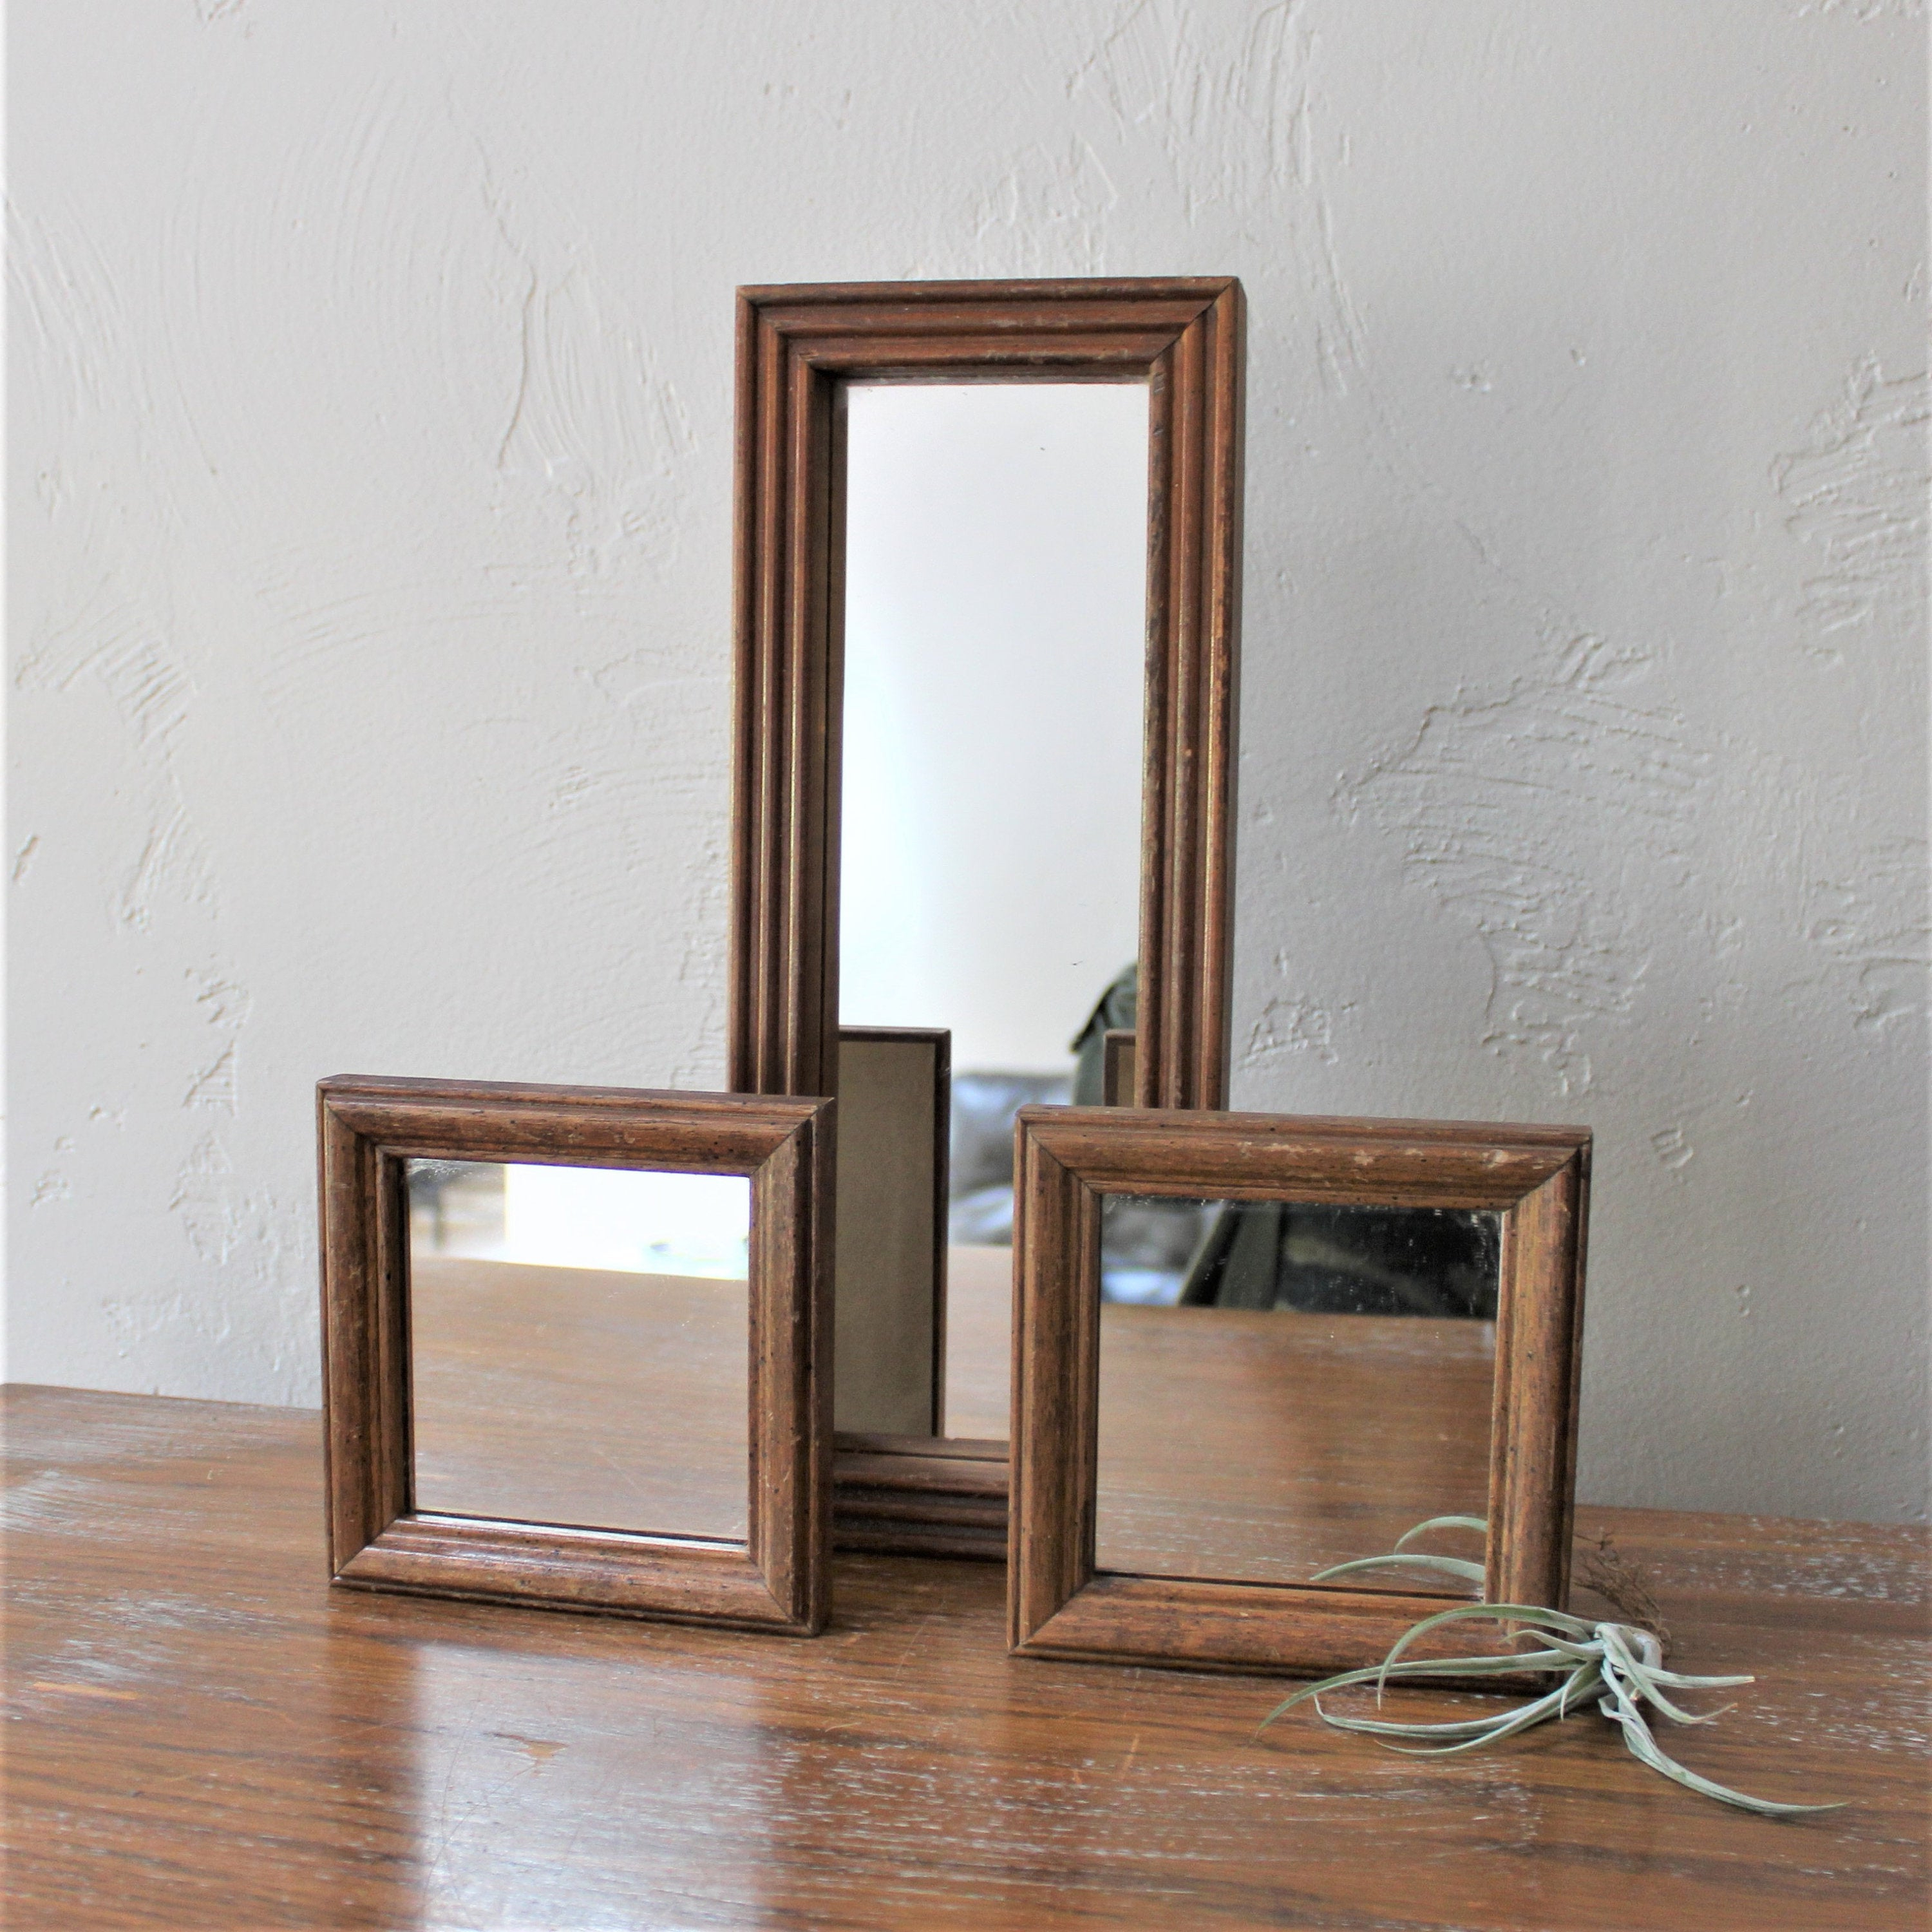 Fashionable Wooden Wall Mirrors With Regard To 3 Wooden Wall Mirrors, Wood Mirror Set, Entryway Decor, Hall Mirror, Entry  Way Mirror, Long Wall Mirror, Gallery Wall Decor, Square Mirror (Gallery 2 of 20)